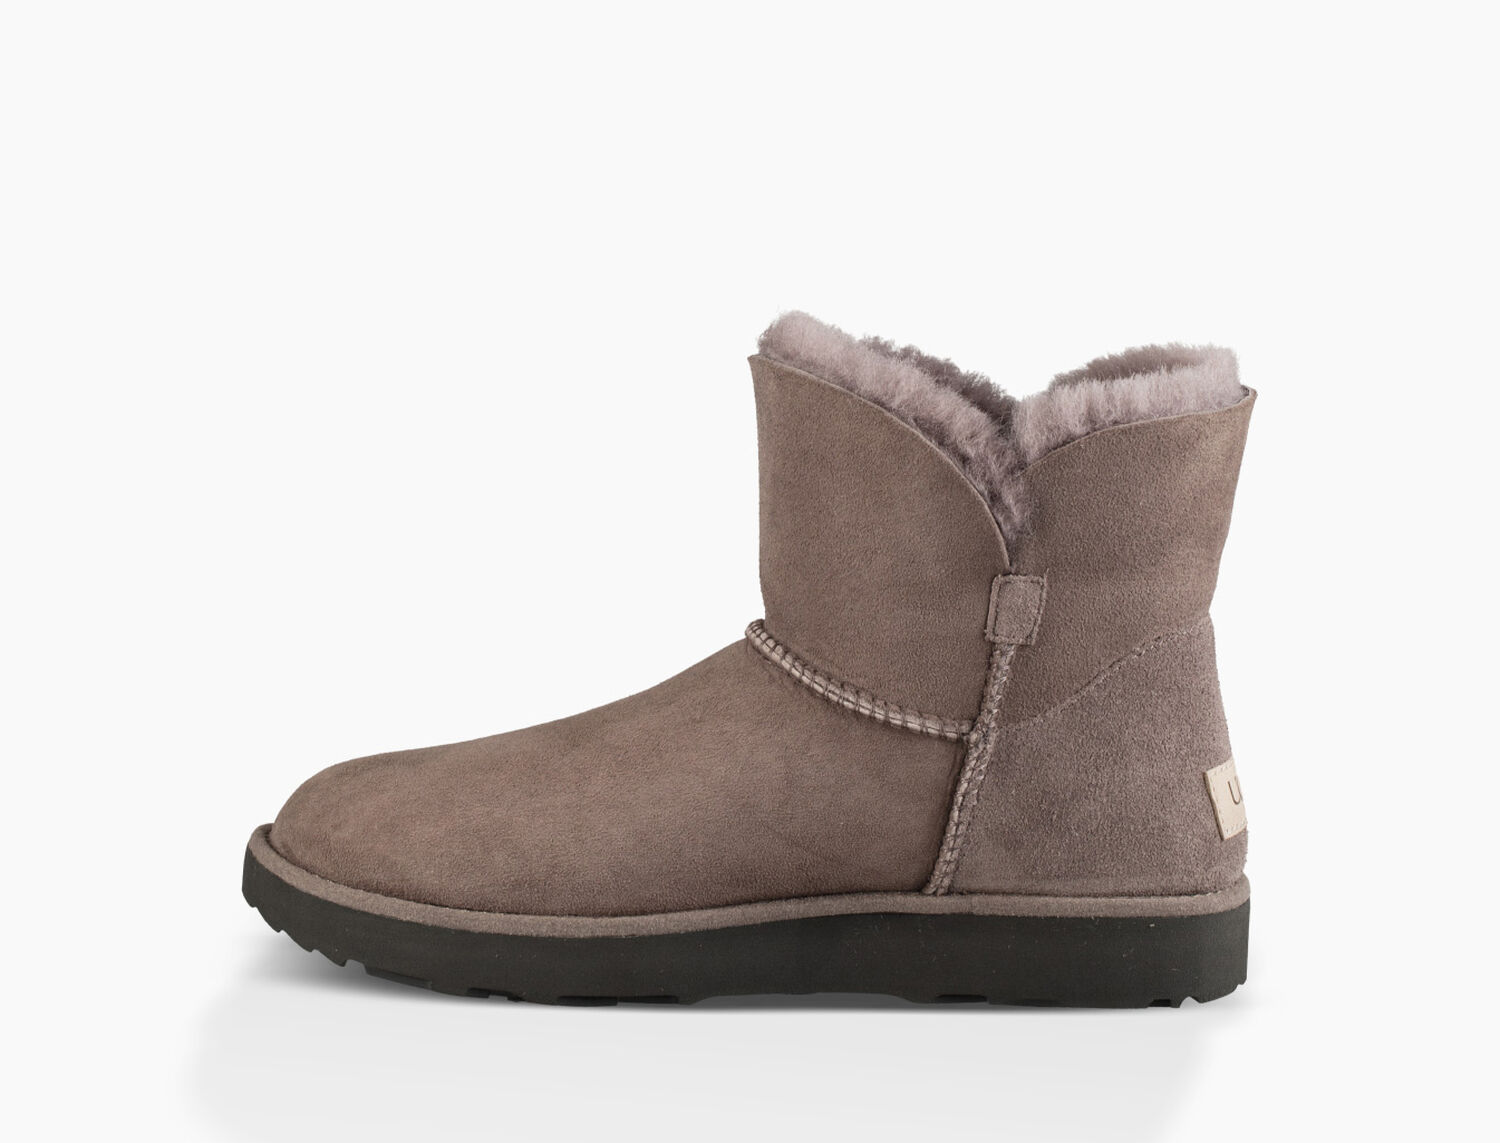 Find iconic UGG® boots and slippers, plus UGG sandals, flats, sneakers and more on sale at dalmanco.ml, with free shipping and free returns all the time.